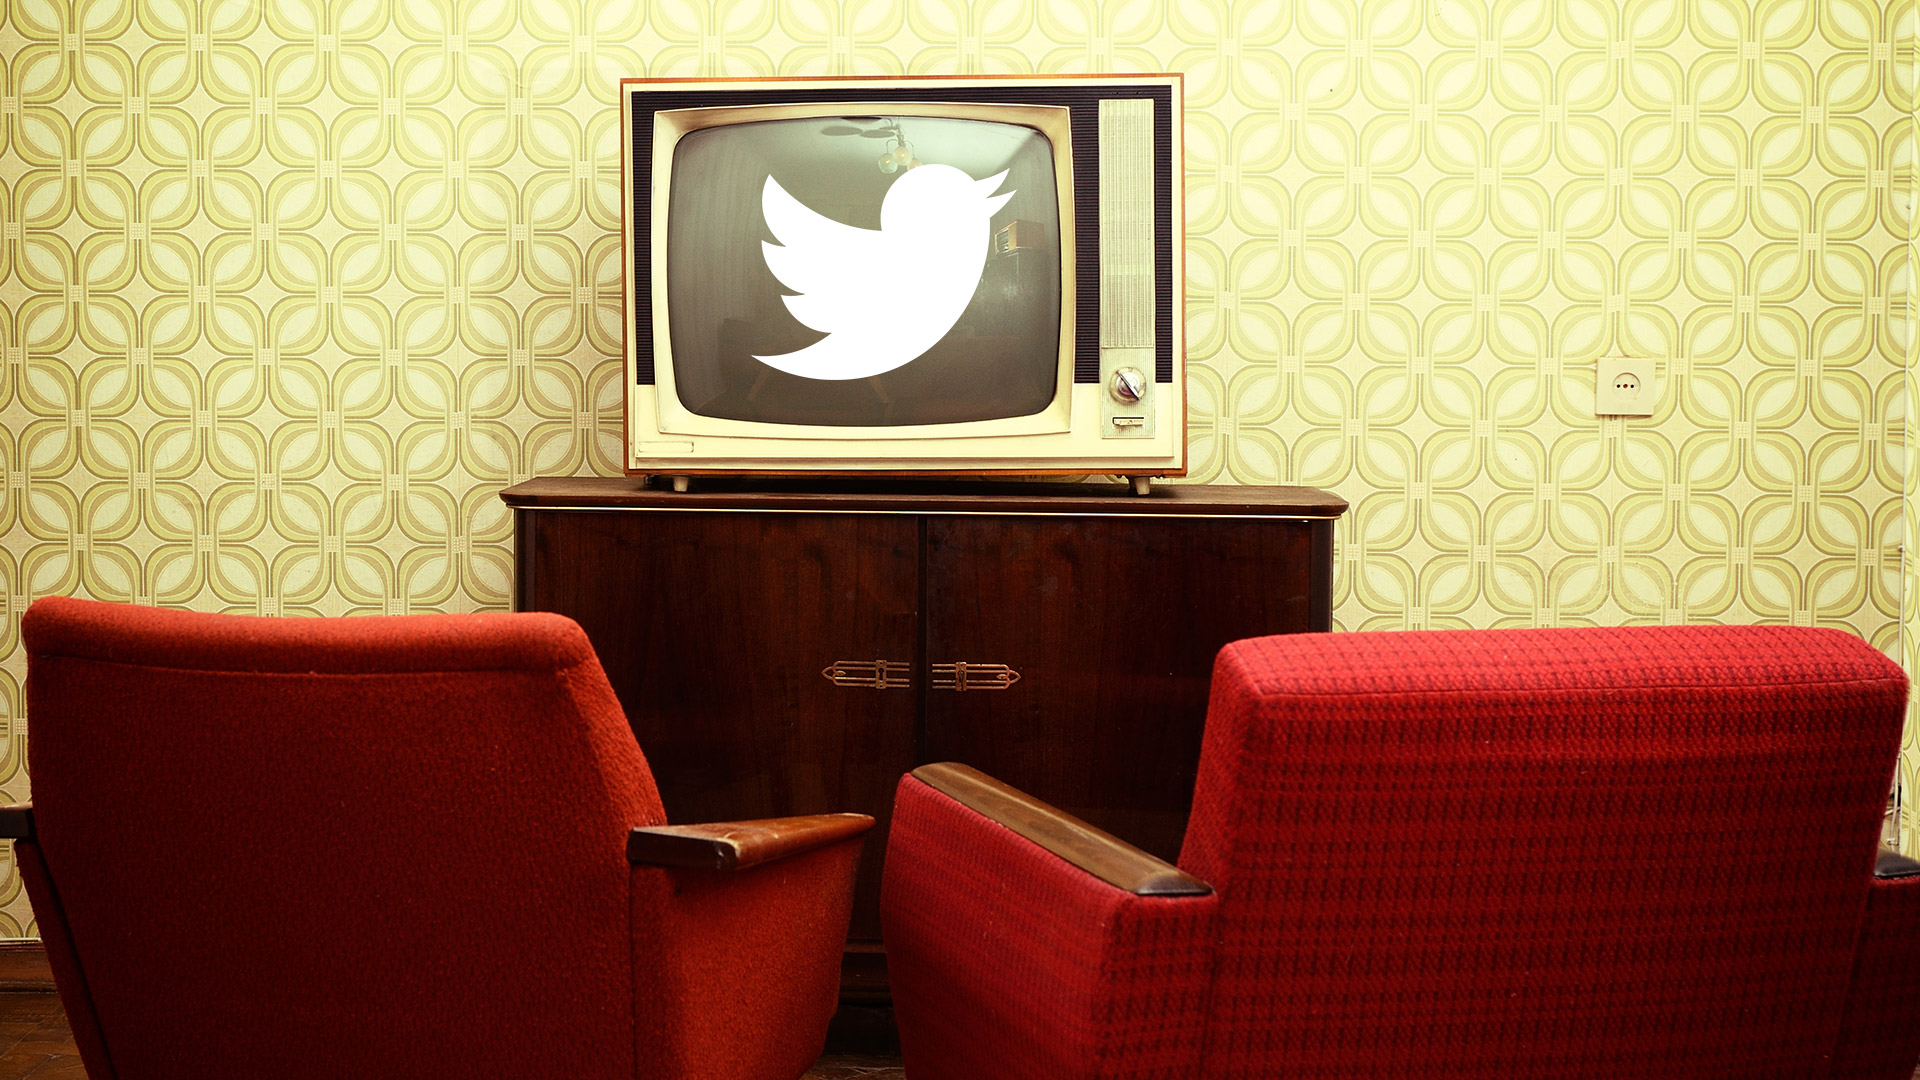 twitter-tv-video-ss-1920